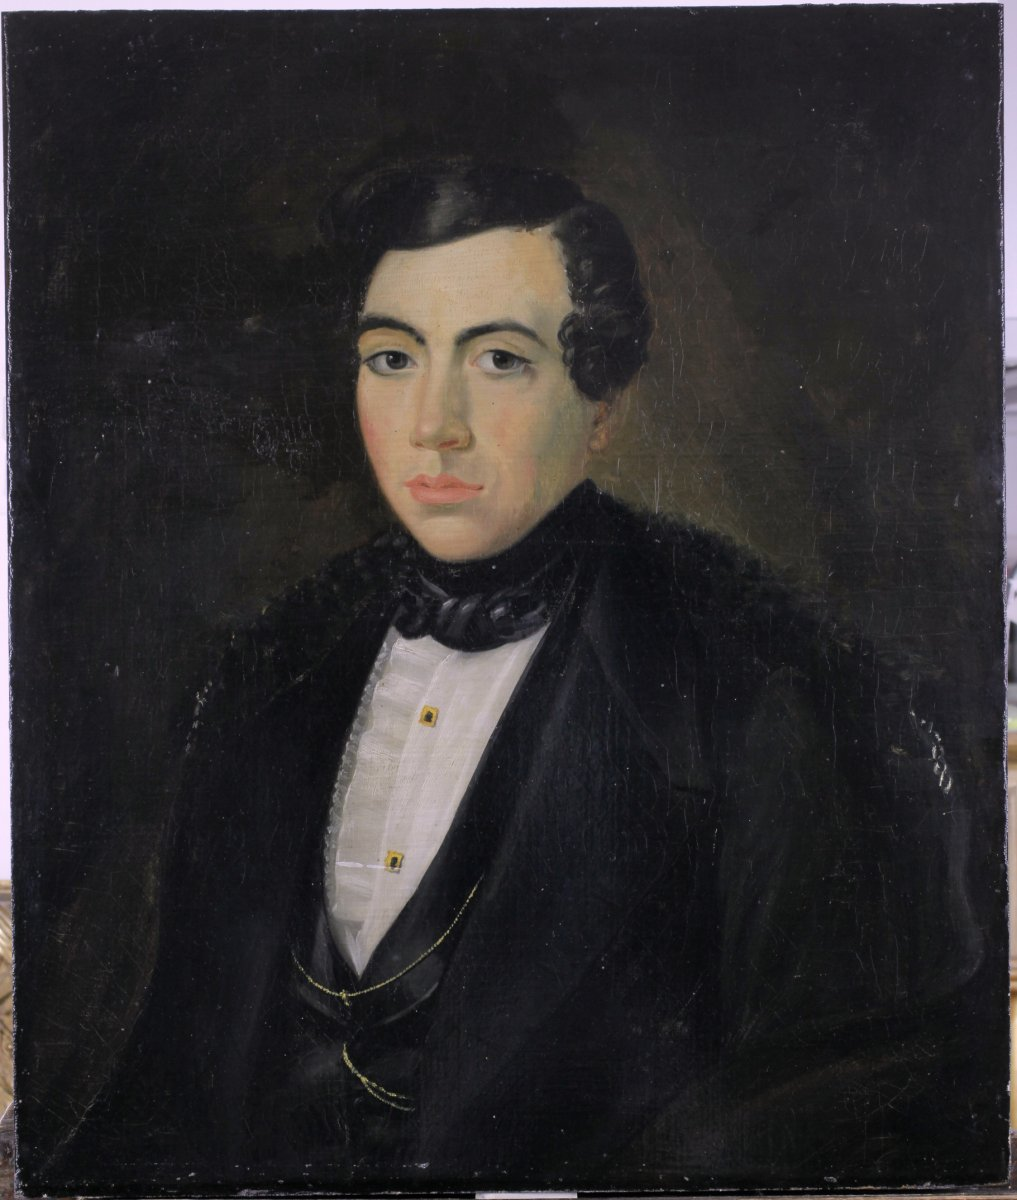 Old Table, Portrait, Man, Oil On Canvas, Attribution To The Back Of The Table